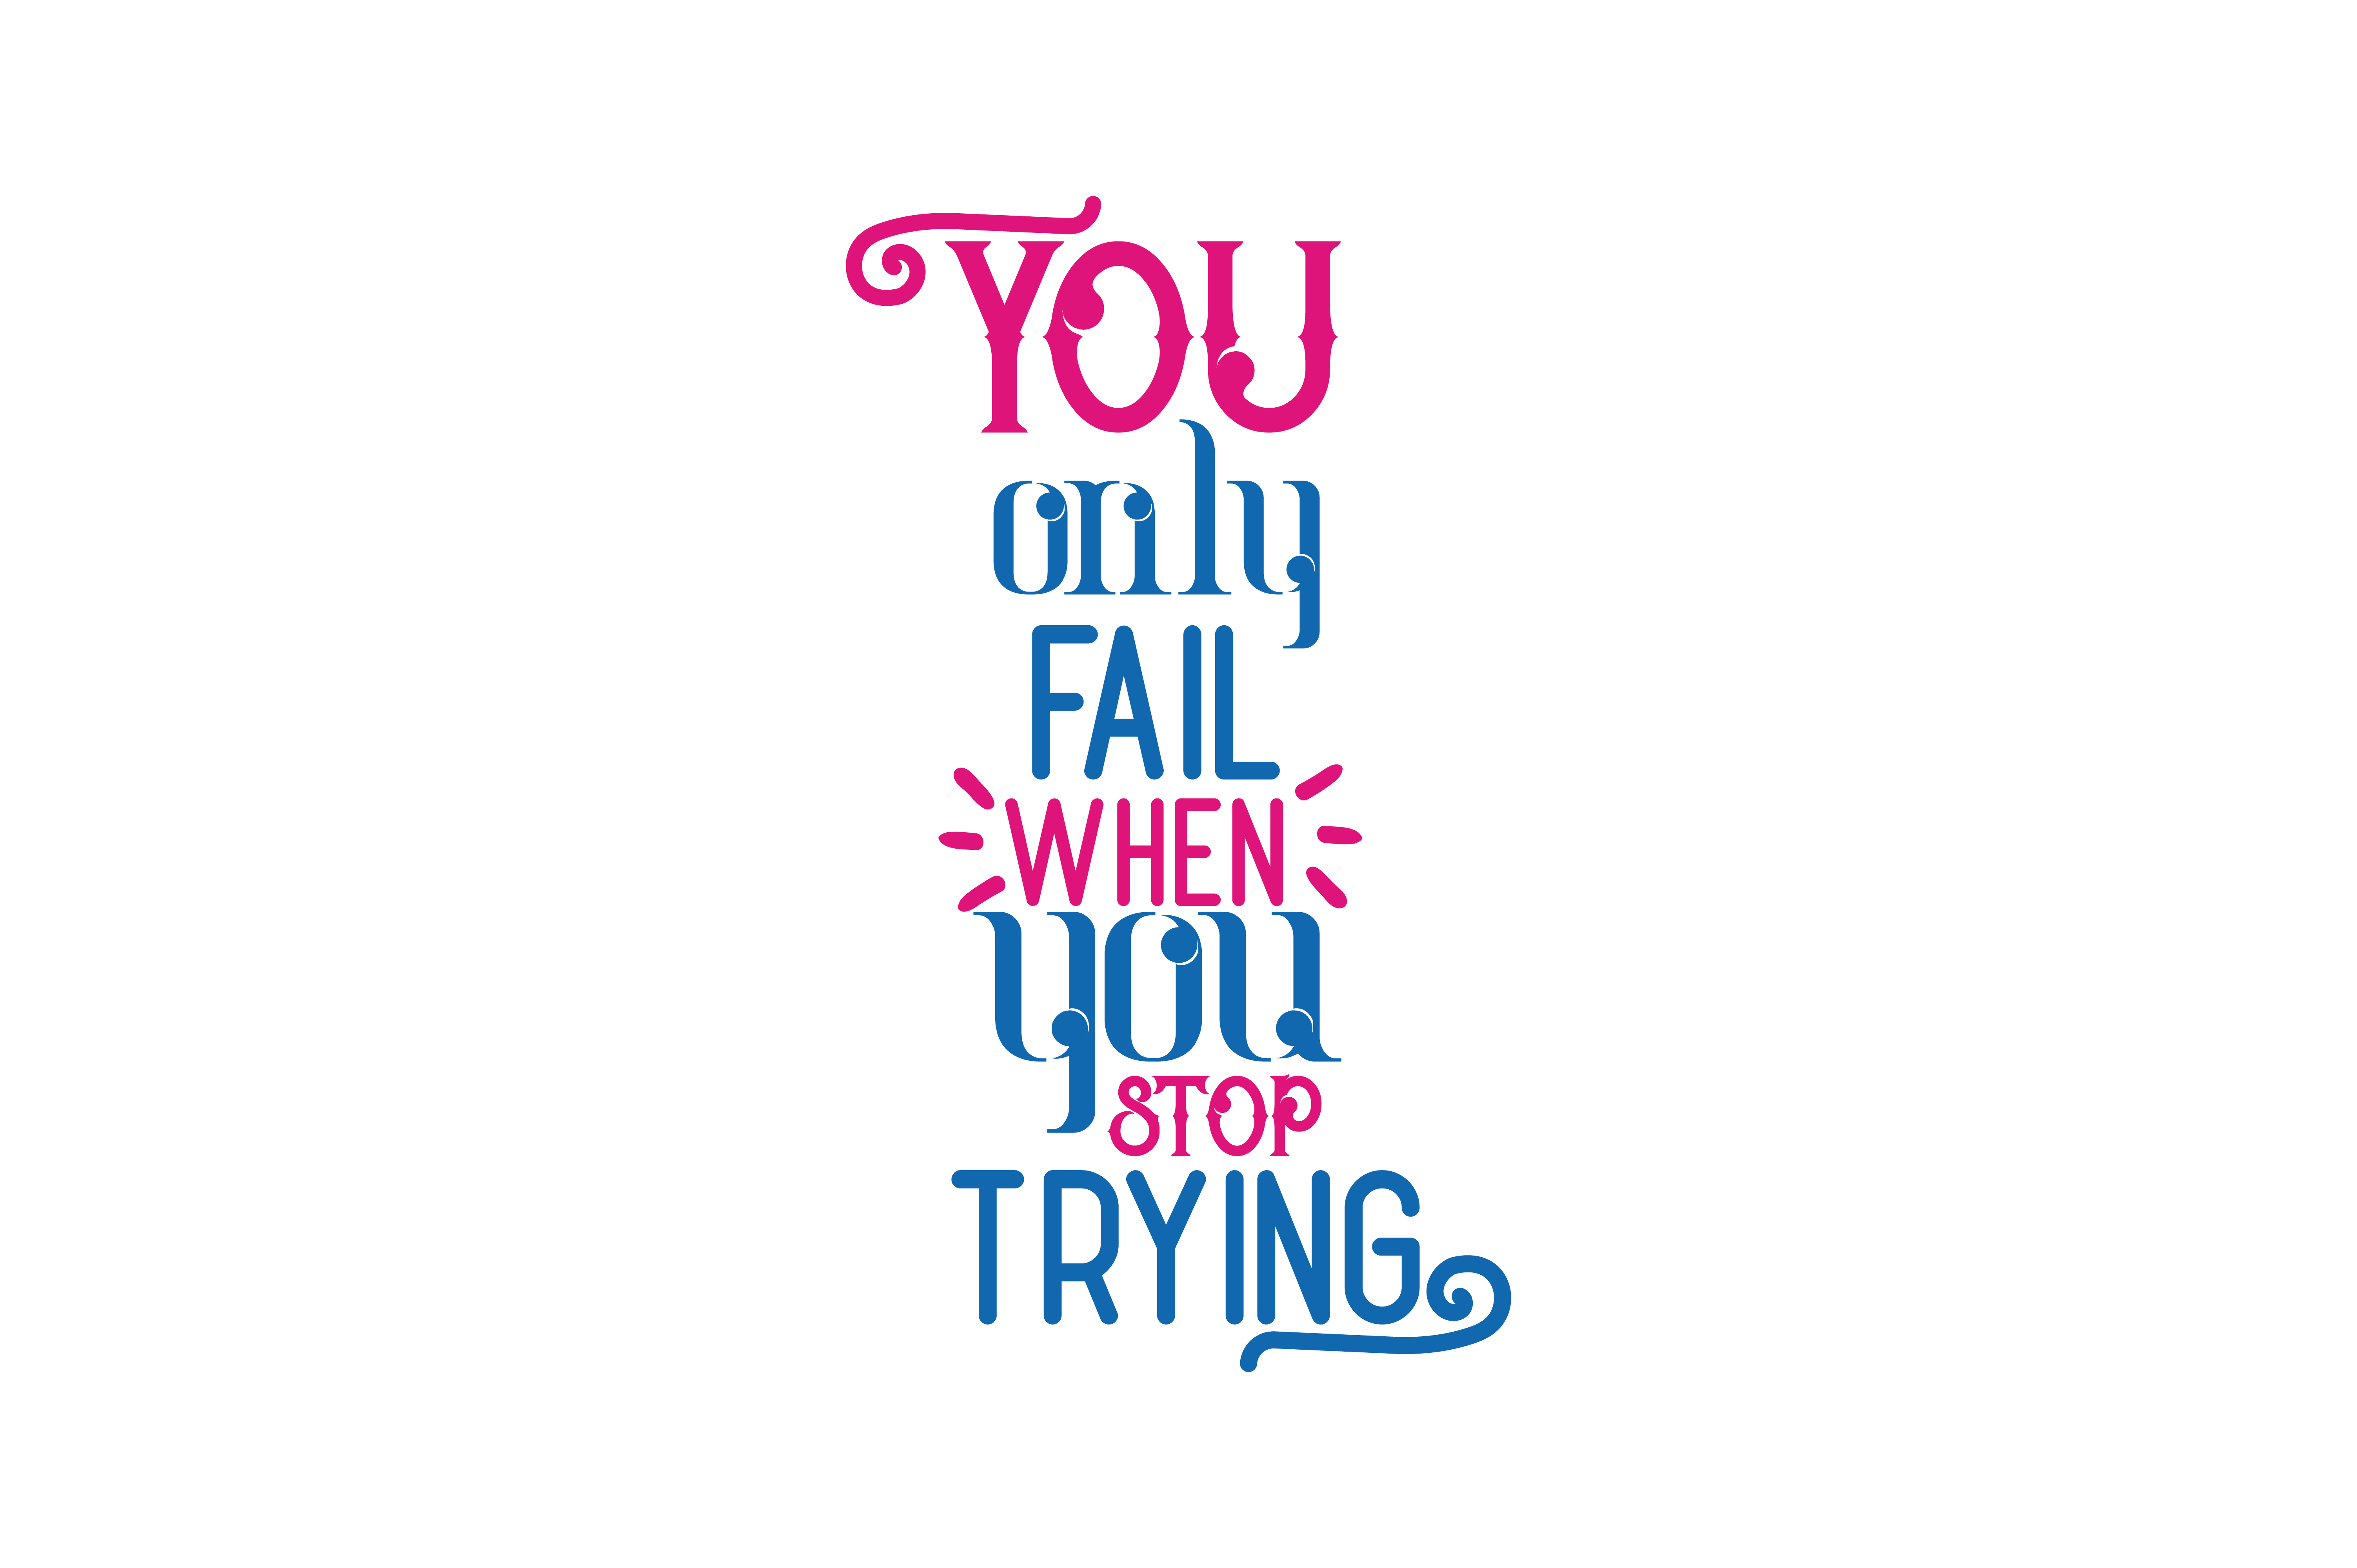 Download Free You Only Fail When You Stop Trying Svg Cut Quote Graphic By for Cricut Explore, Silhouette and other cutting machines.